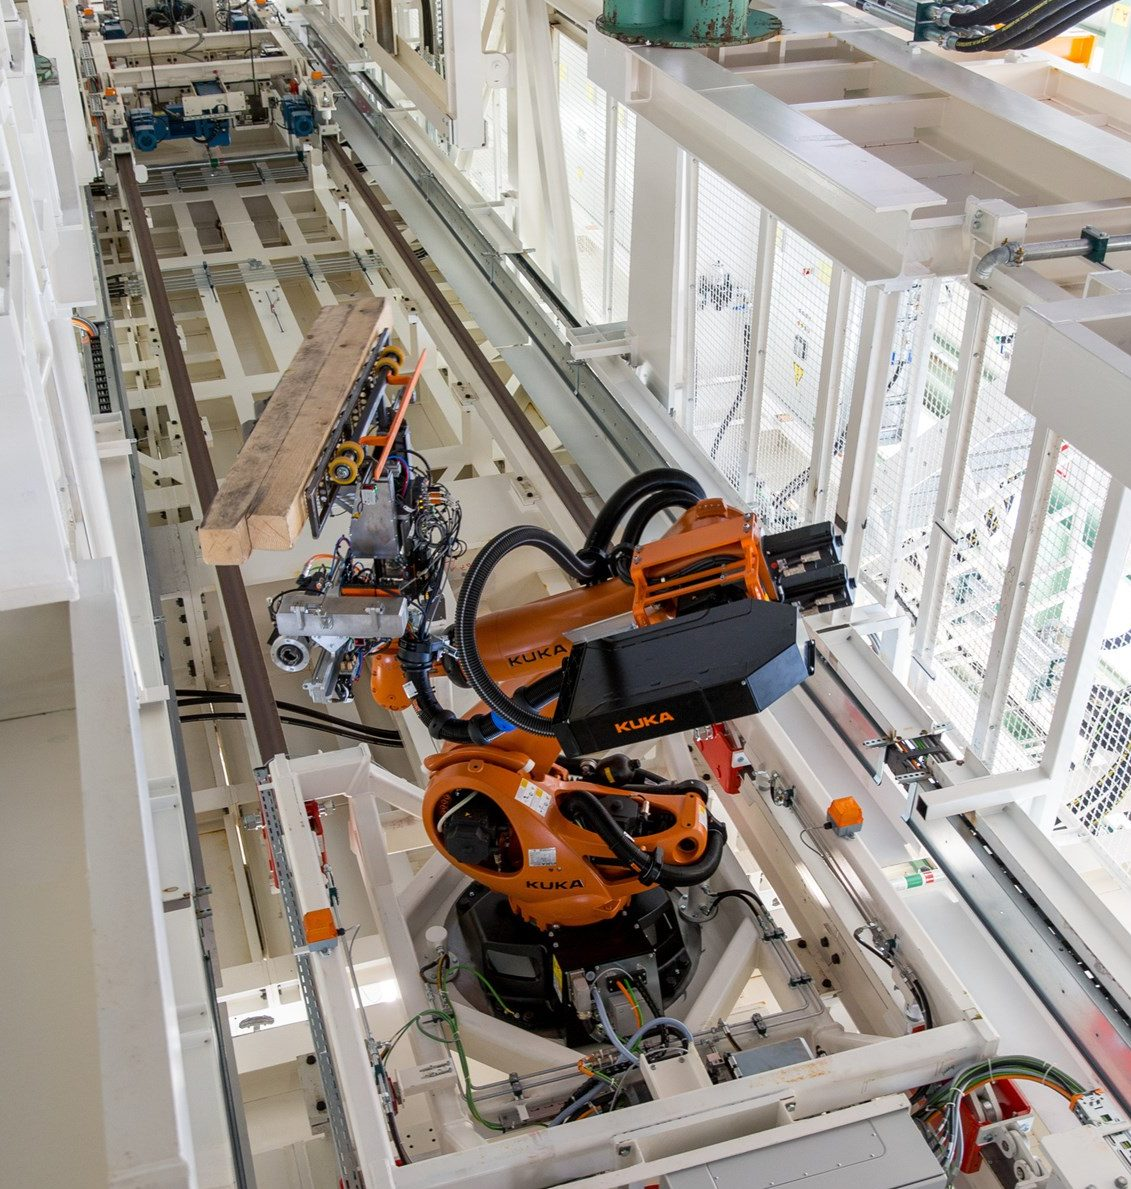 HS2 boosts safety and efficiency with innovative robot for Chiltern tunnelling machines